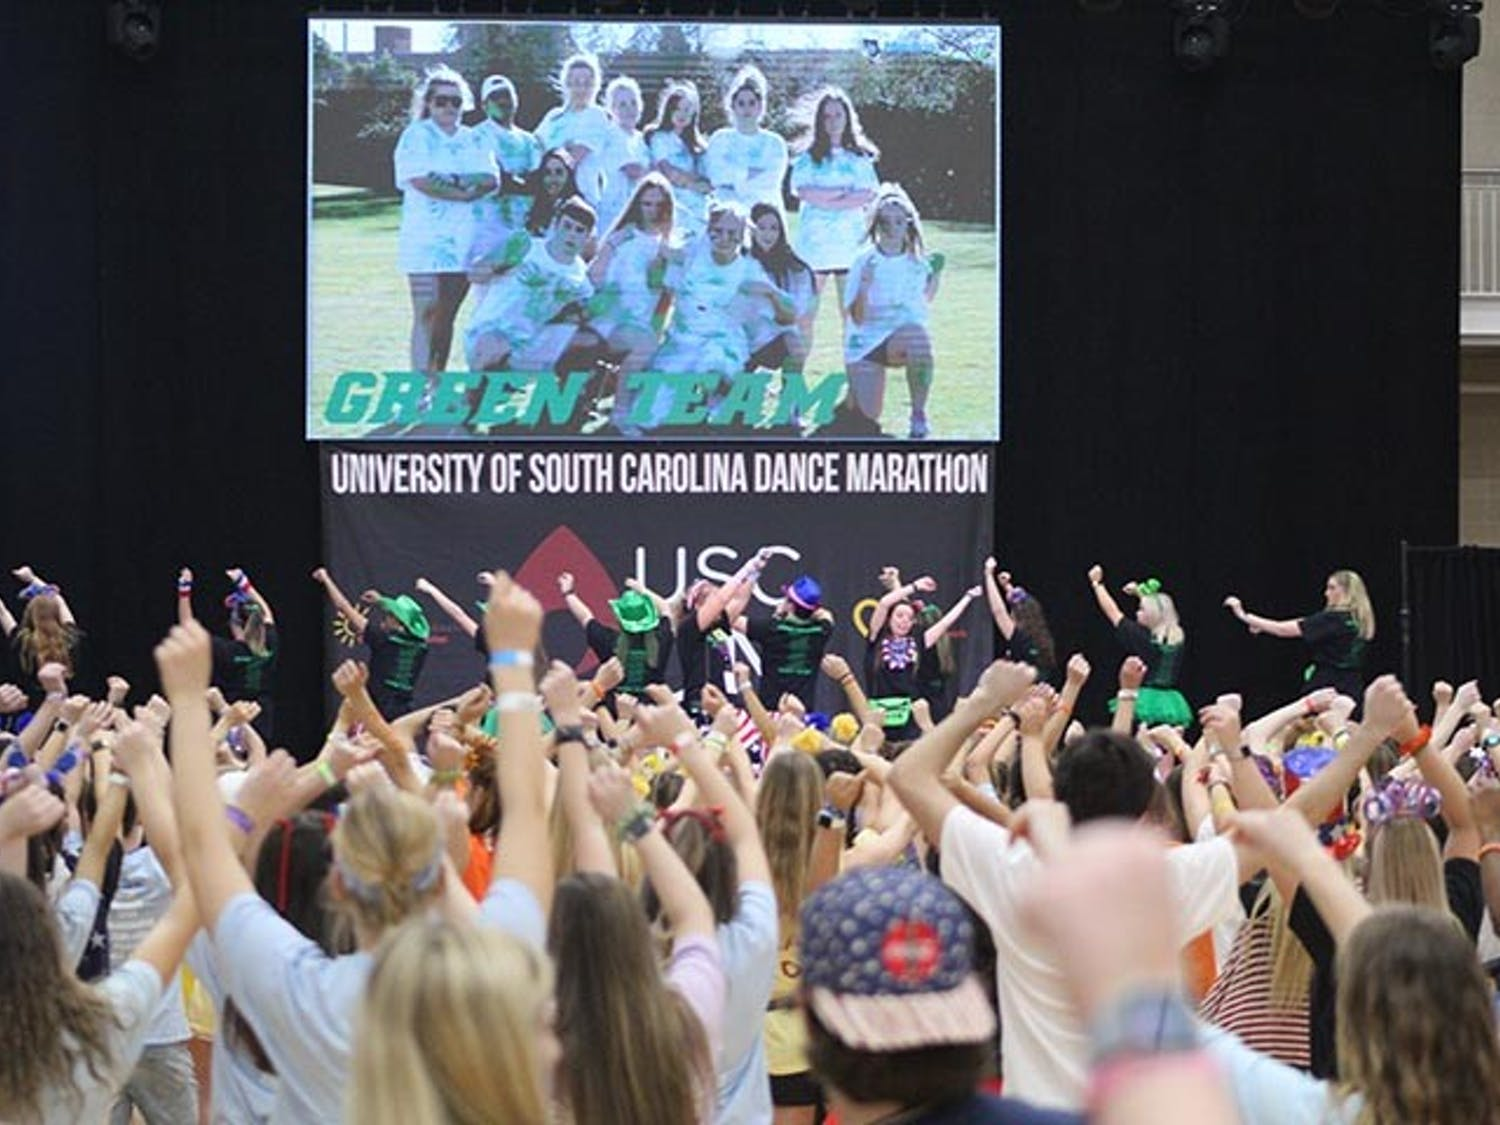 Volunteers and attendees spin around as the Green Team leads them in a line dance at Dance Marathon's Main Event Feb. 29, 2020.